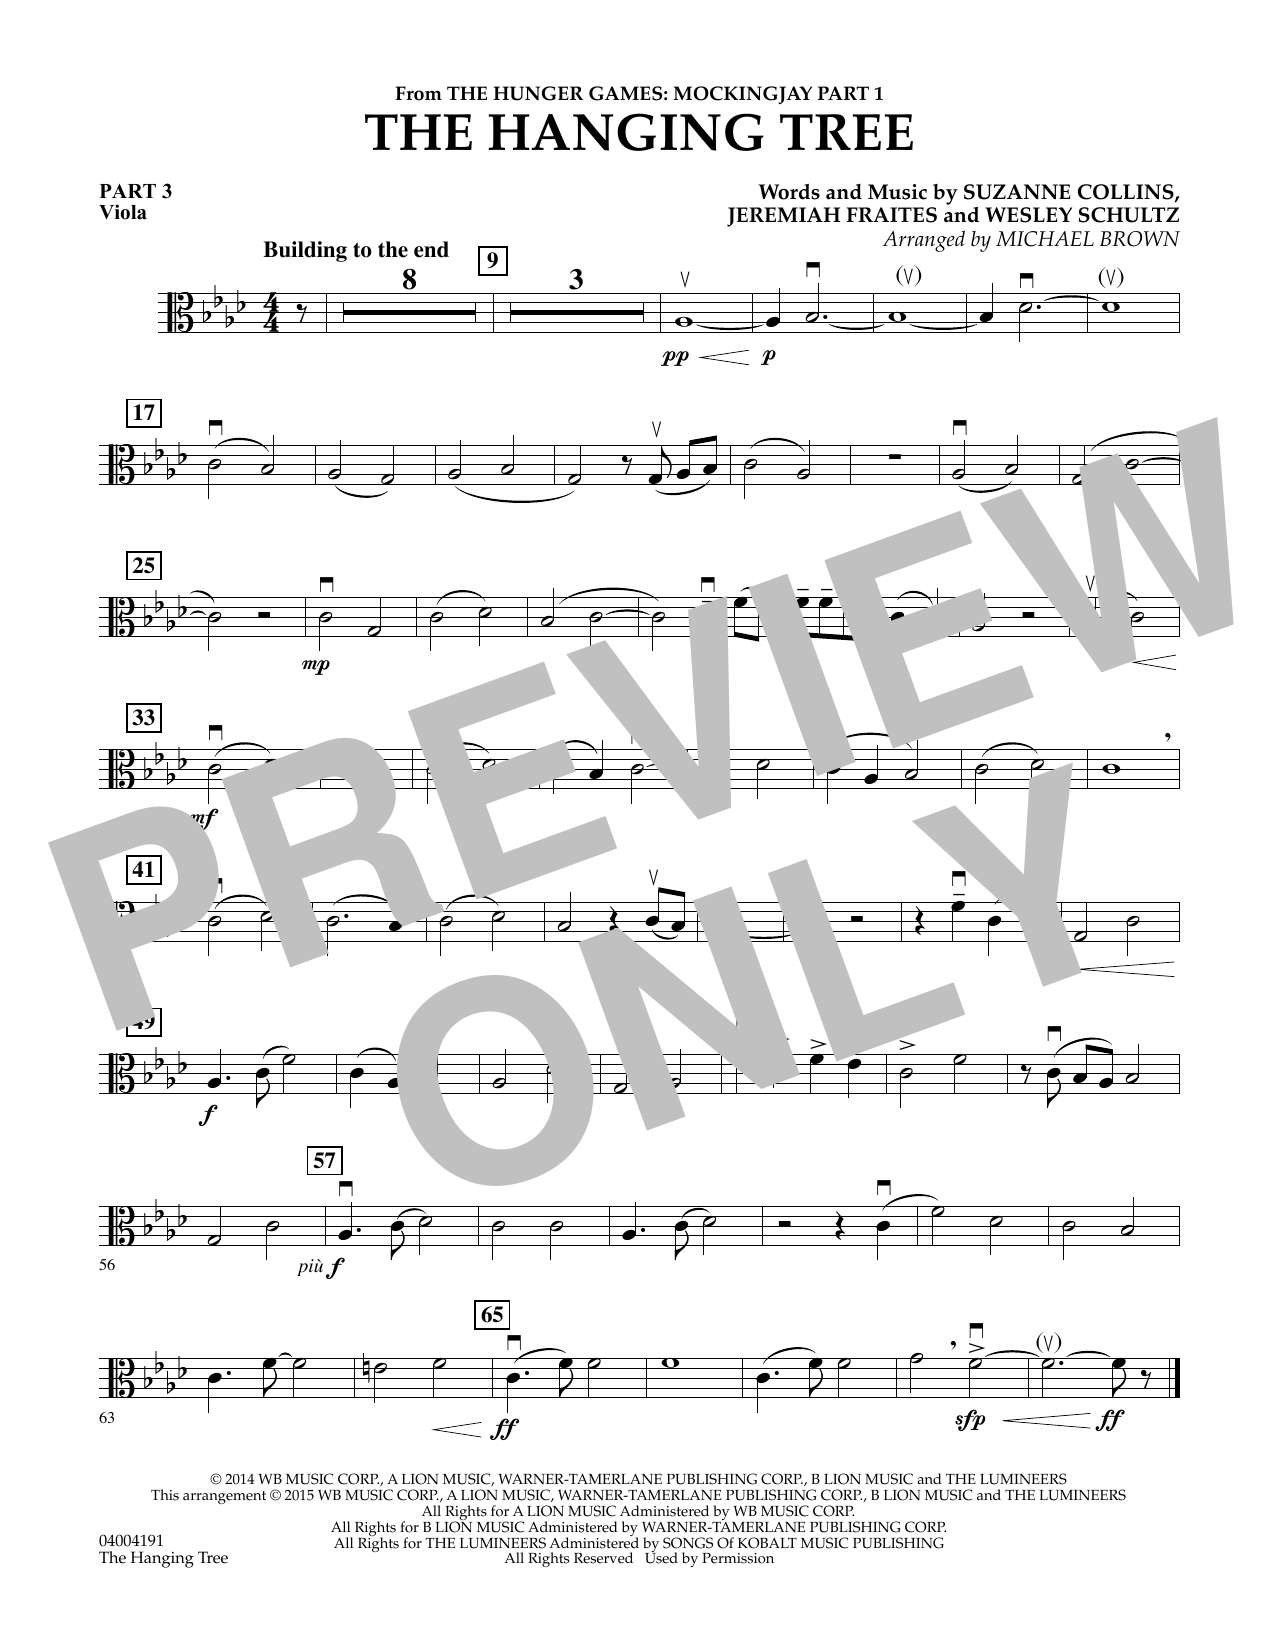 Michael Brown The Hanging Tree (from The Hunger Games: Mockingjay Part 1) - Pt.3 - Viola sheet music notes and chords. Download Printable PDF.